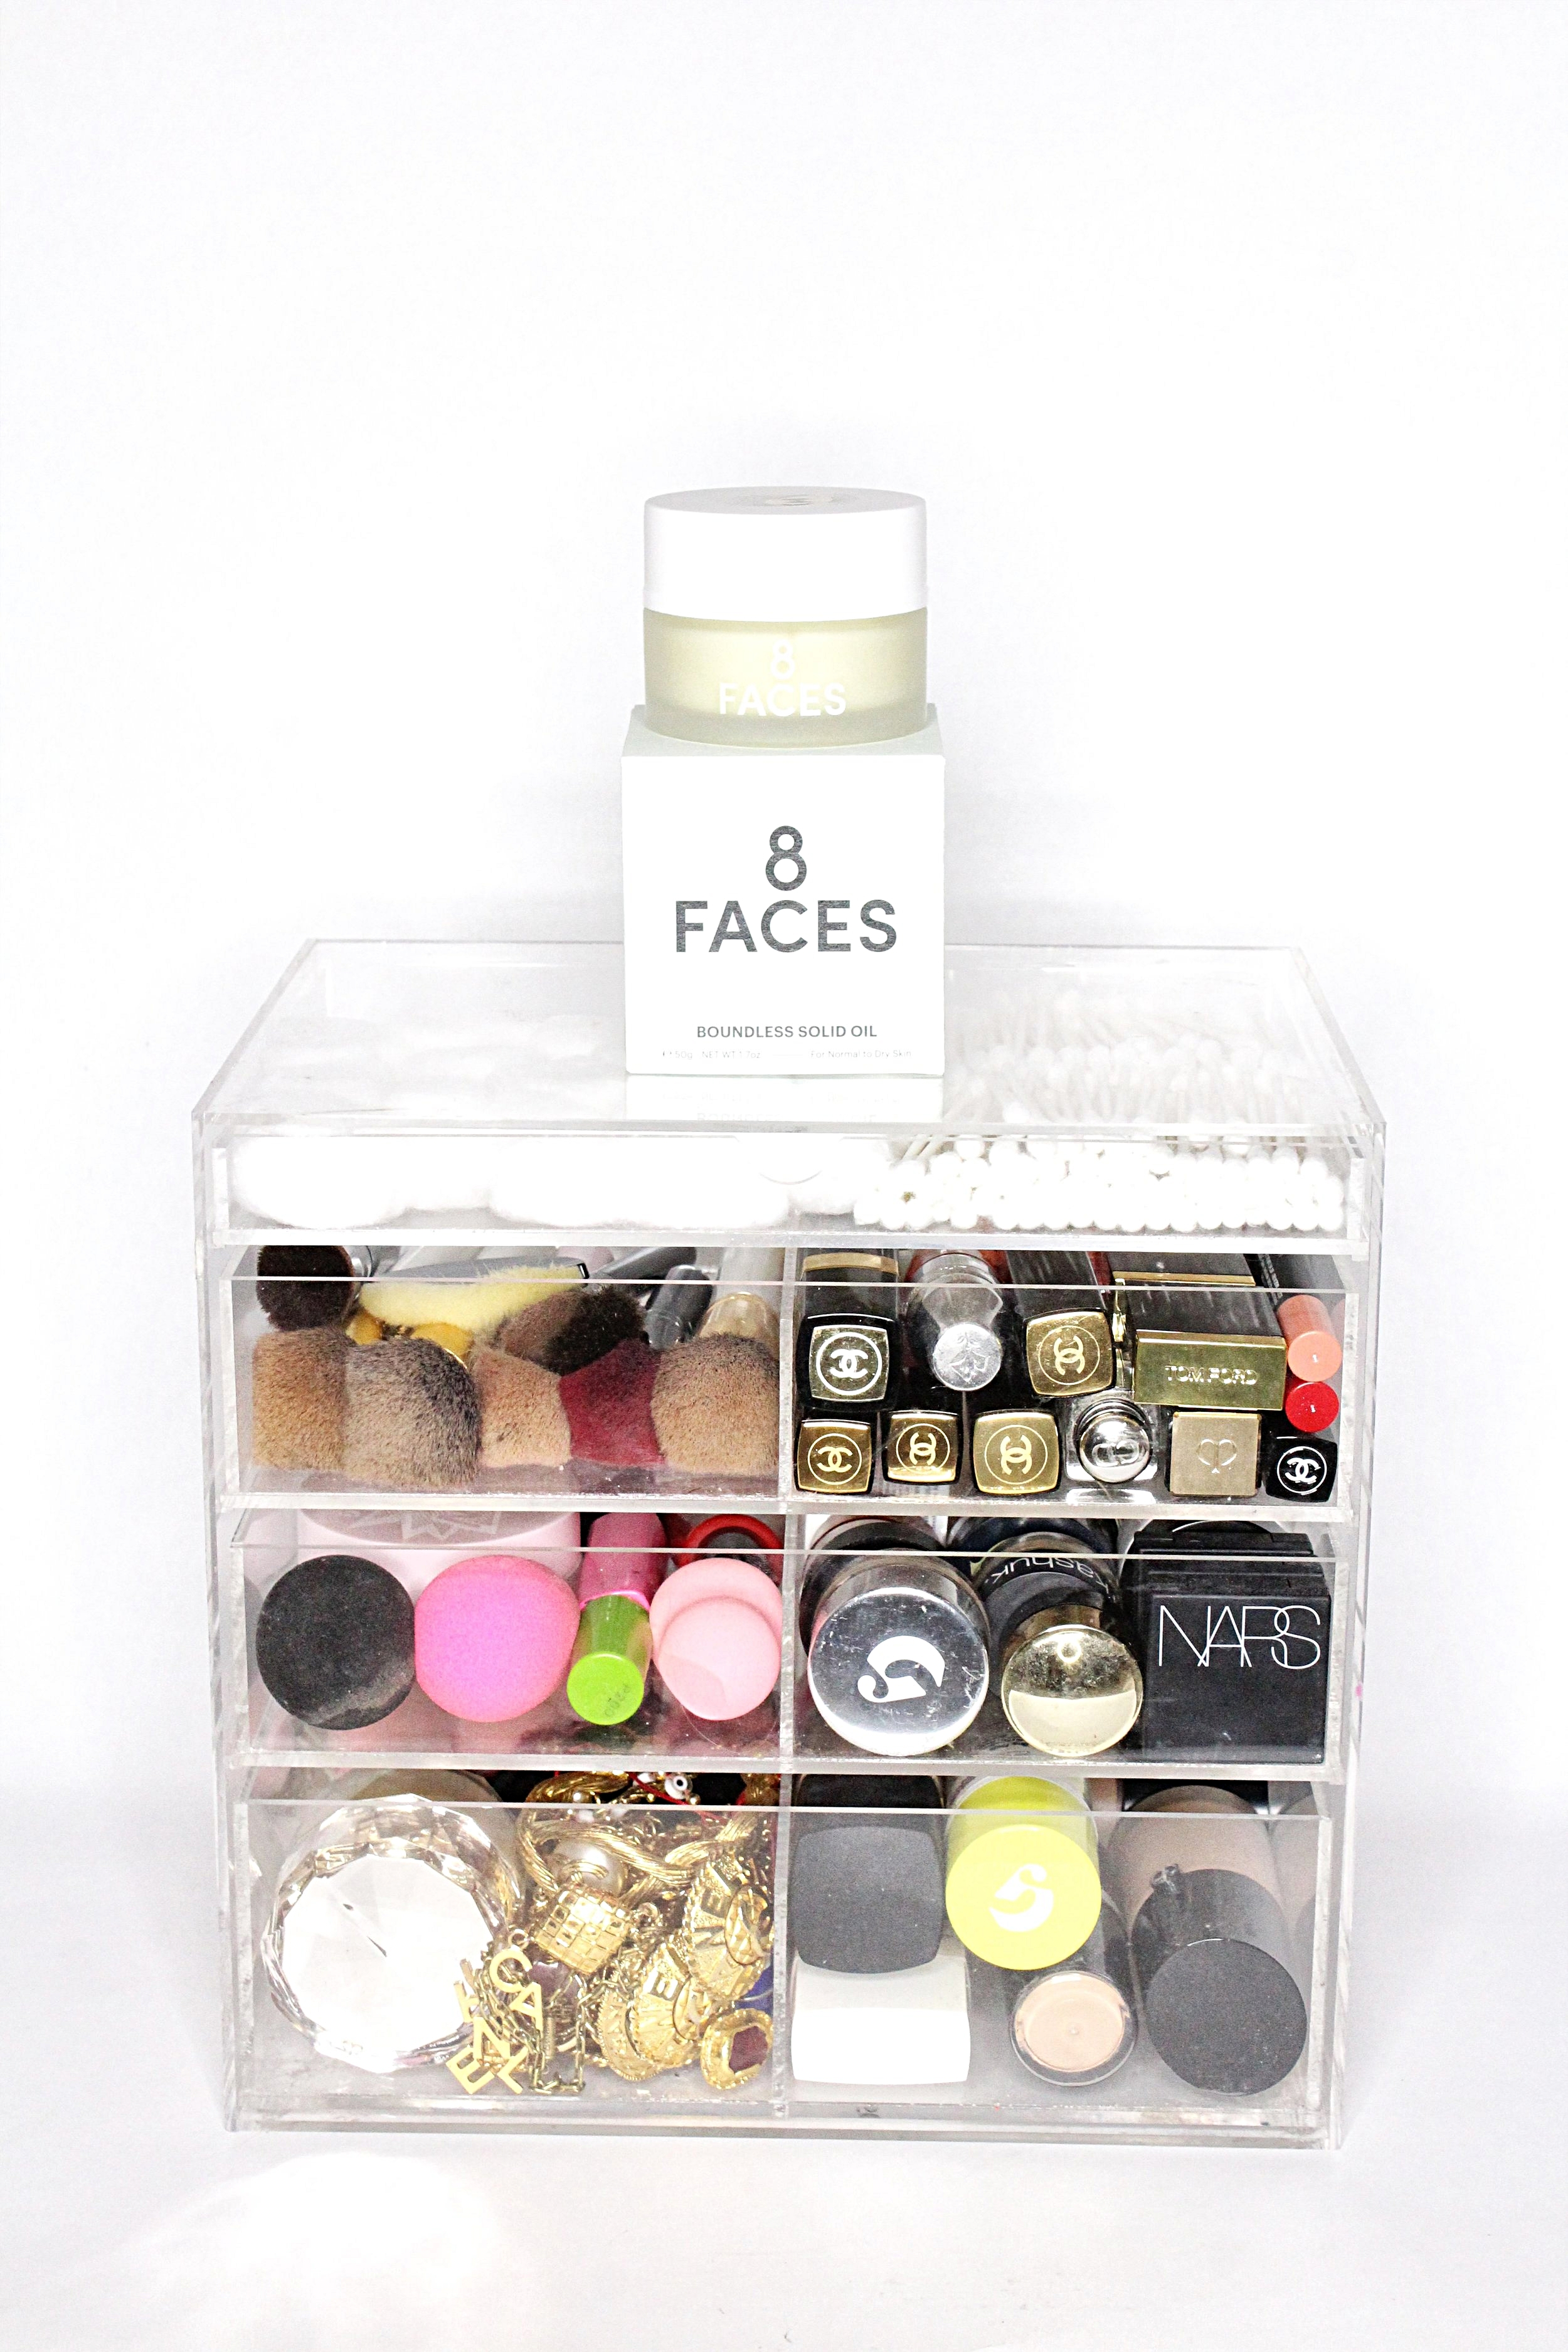 8Faces Beauty Boundless Solid Oil Top of the Tower The Sunday Issue